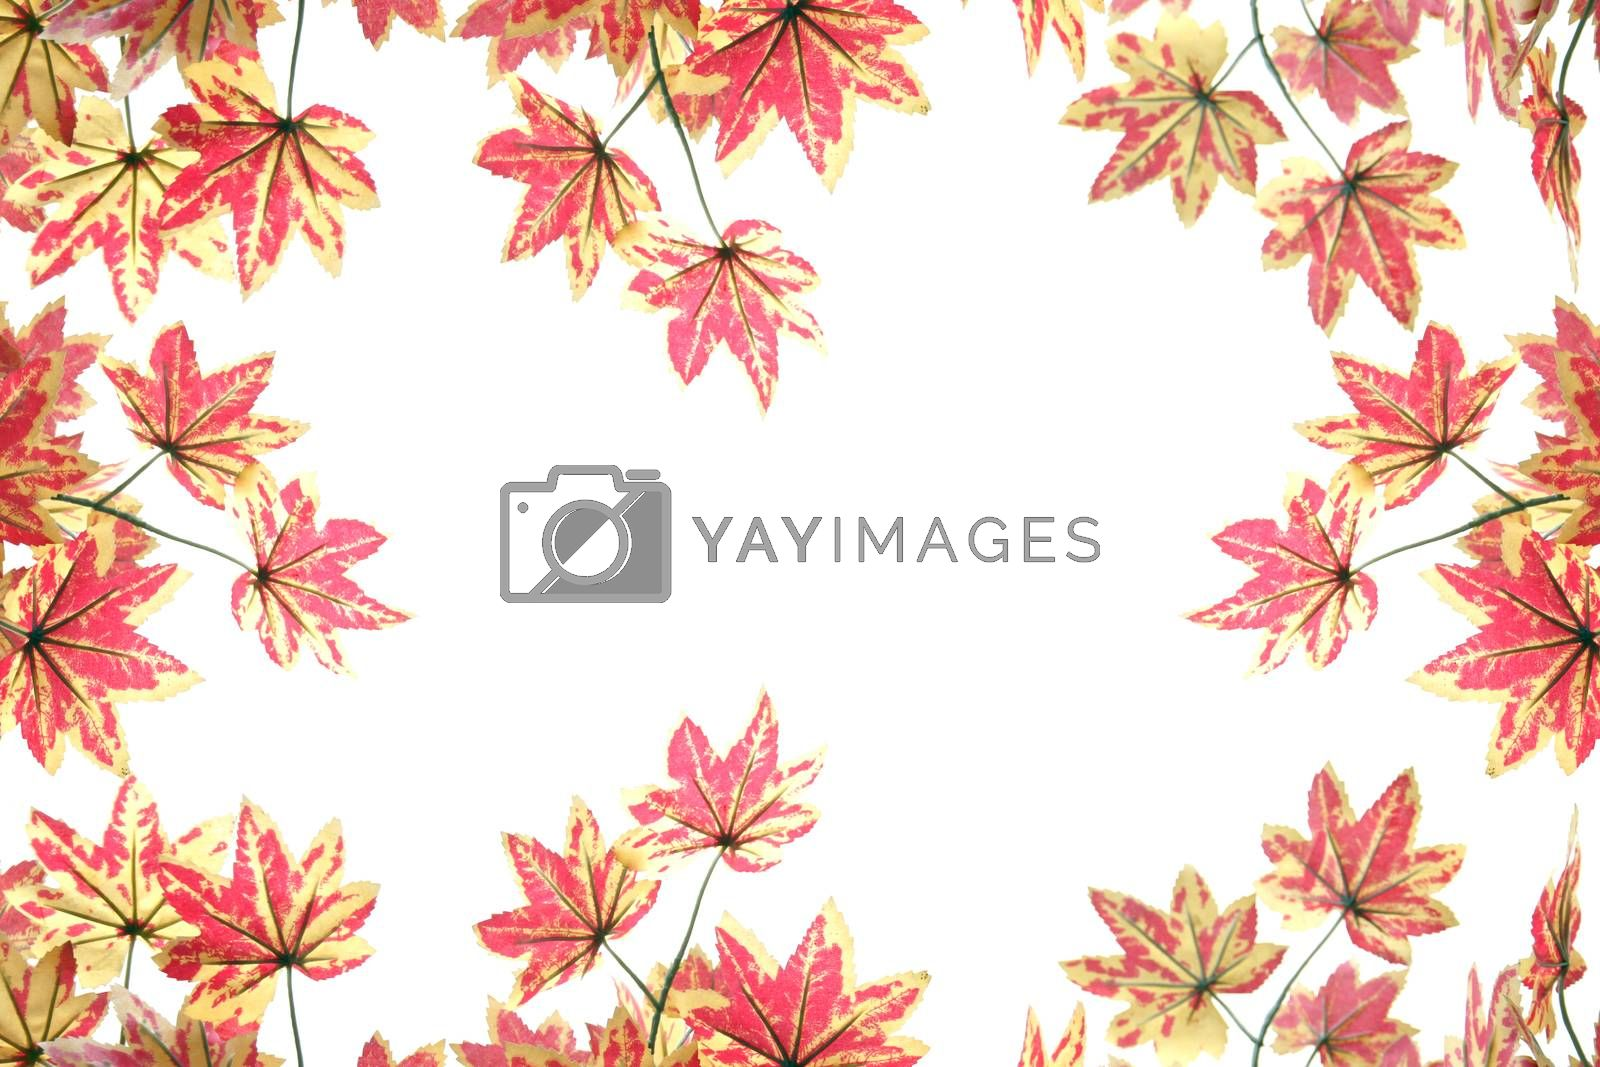 Yellowish orange maple leaves on white background.